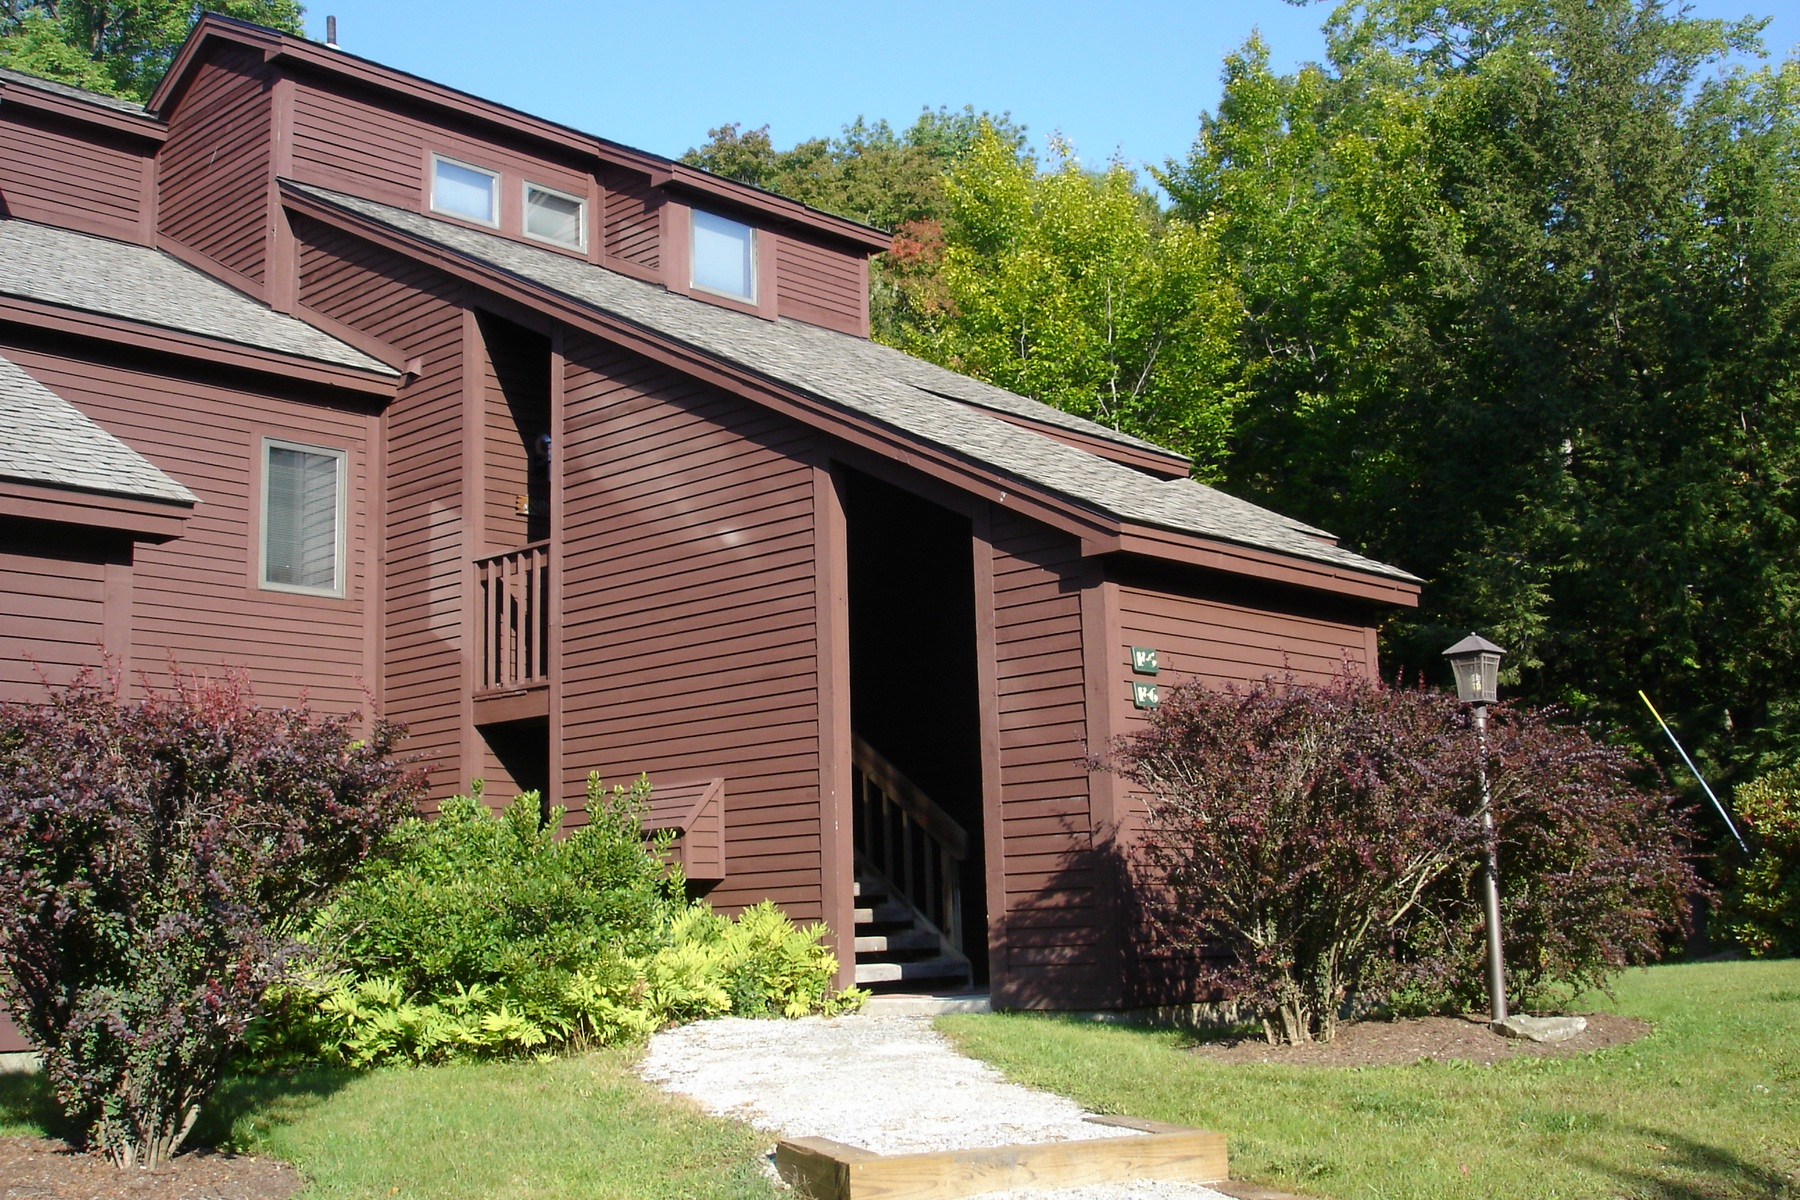 Condominium for Rent at 2 Bedroom at Kettlebrook Kettlebrook F-6 Ludlow, Vermont, 05149 United States